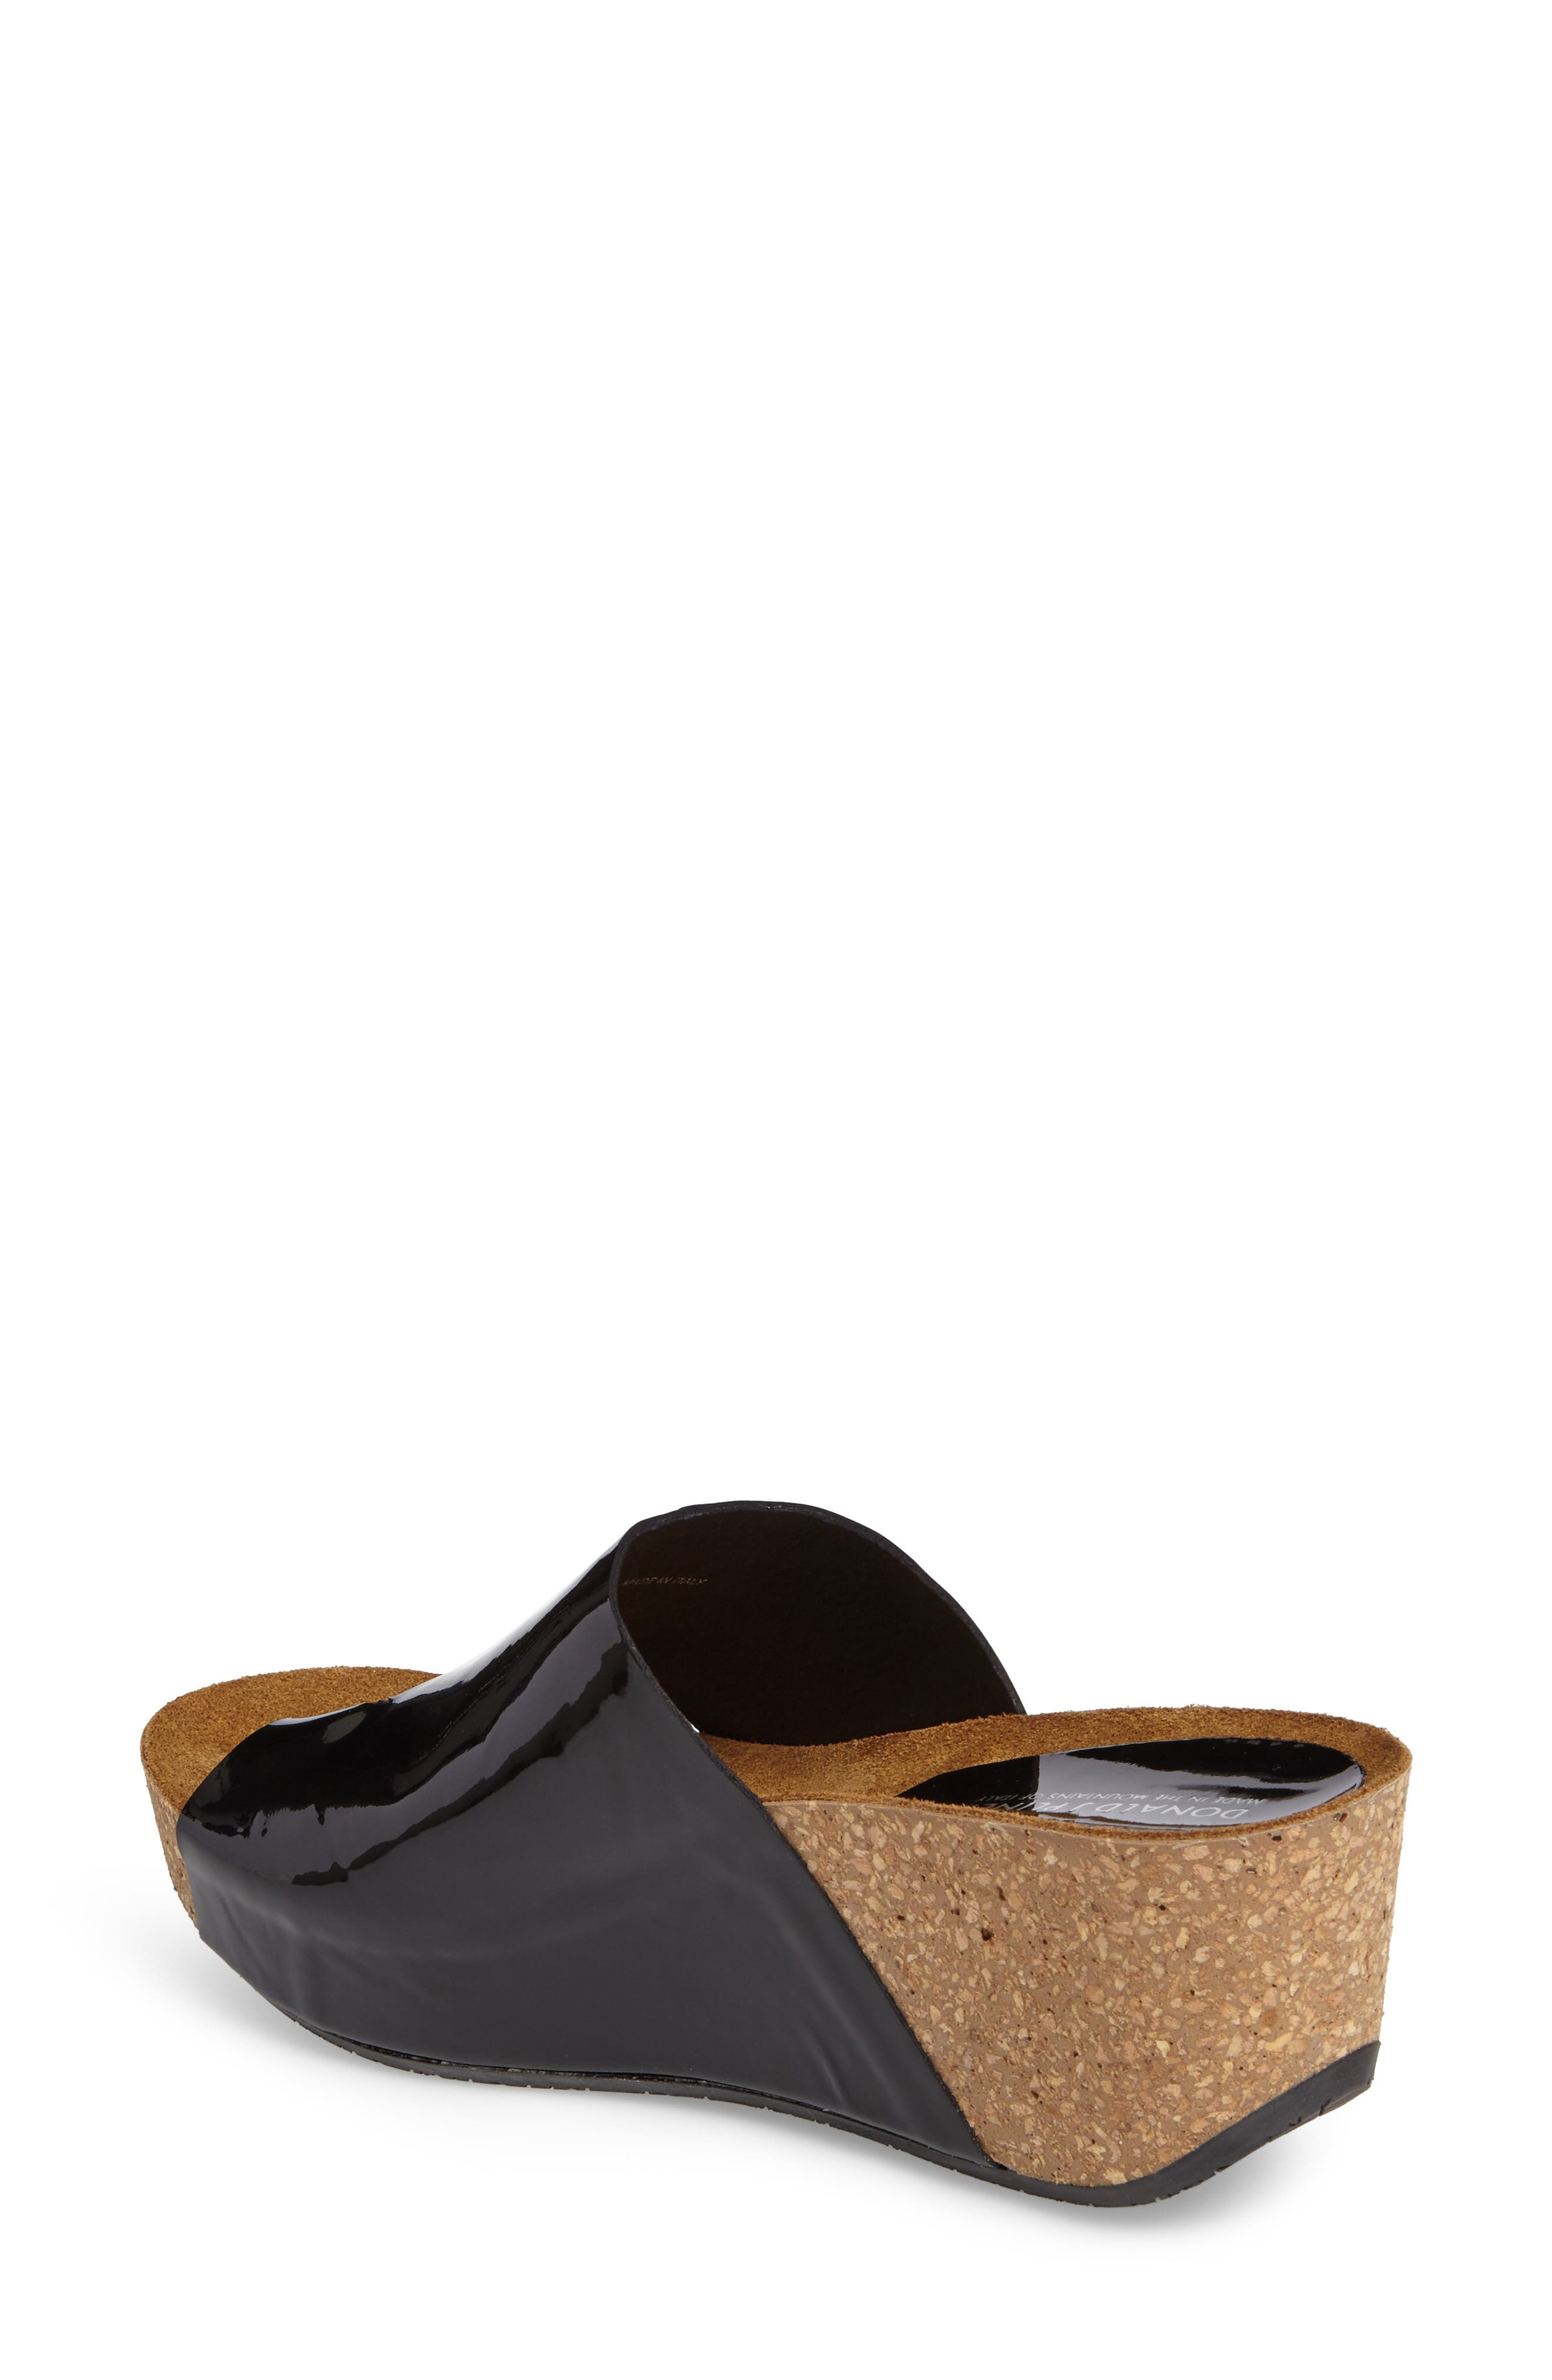 Donald J Pliner Ginie Platform Wedge Sandal,                             Alternate thumbnail 13, color,